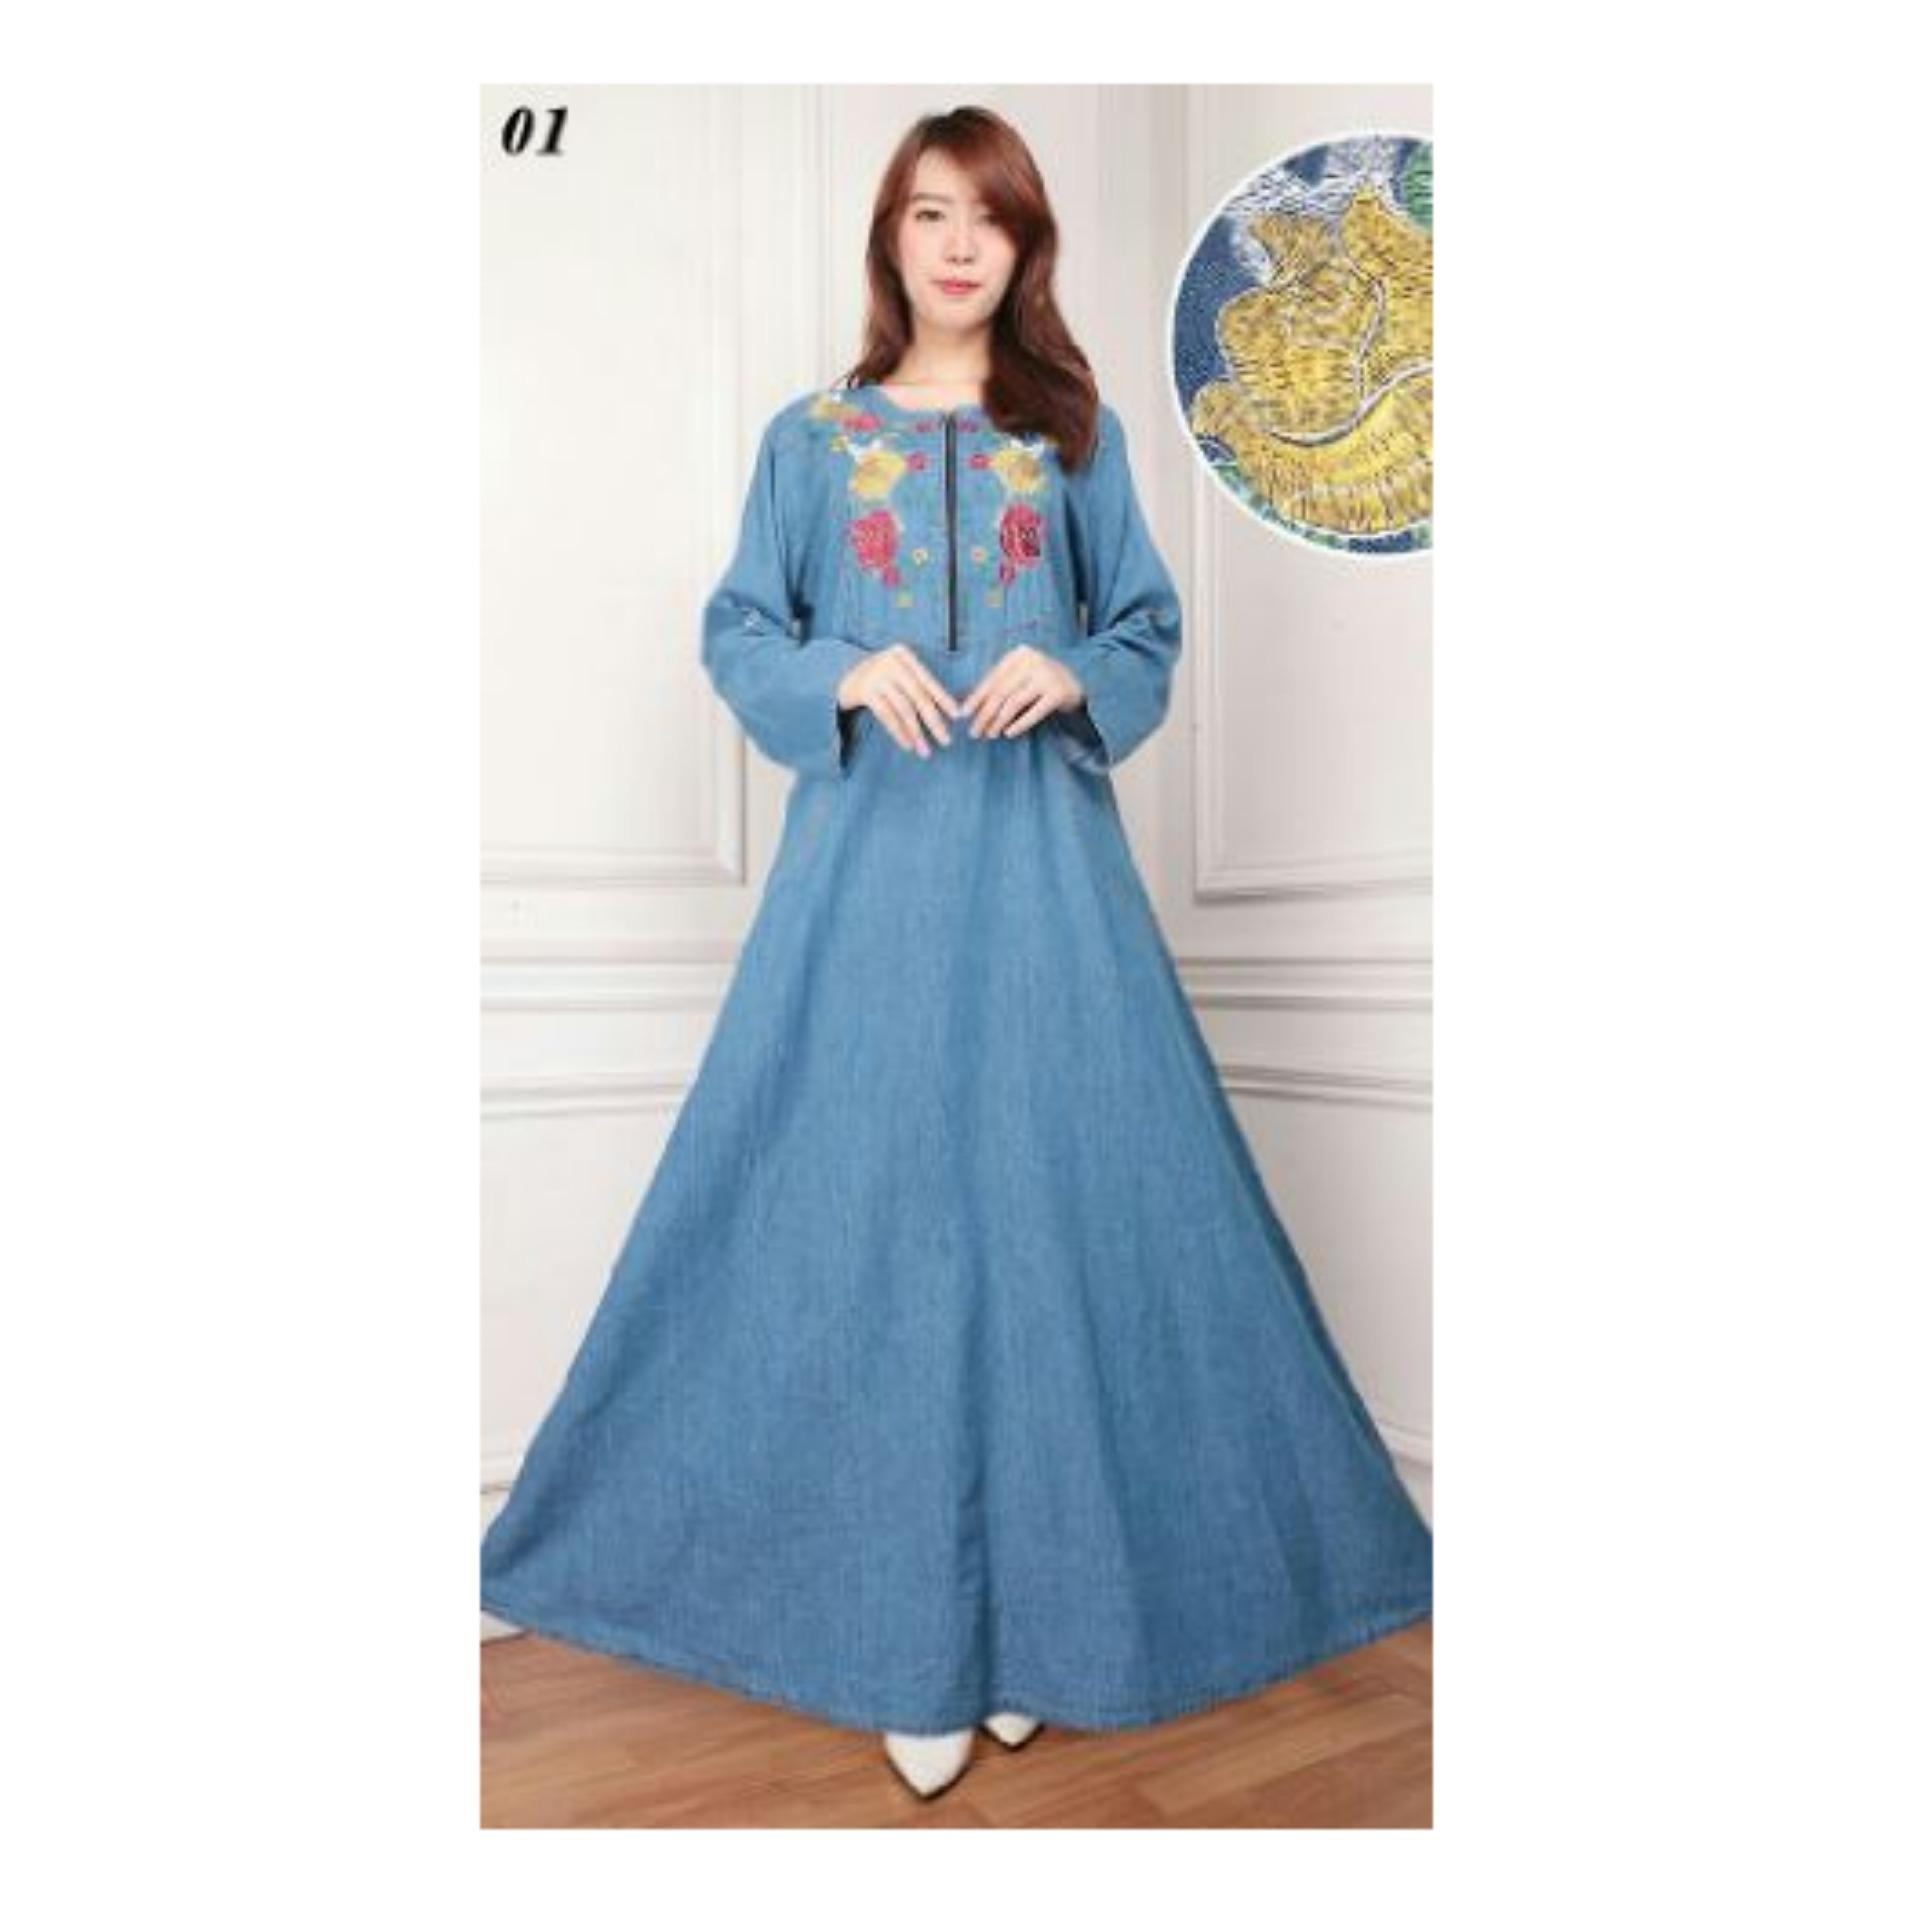 Spesifikasi Sb Collection Maxi Dress Berlita Jeans Jumbo Gamis Bordir Biru Muda Dan Harganya